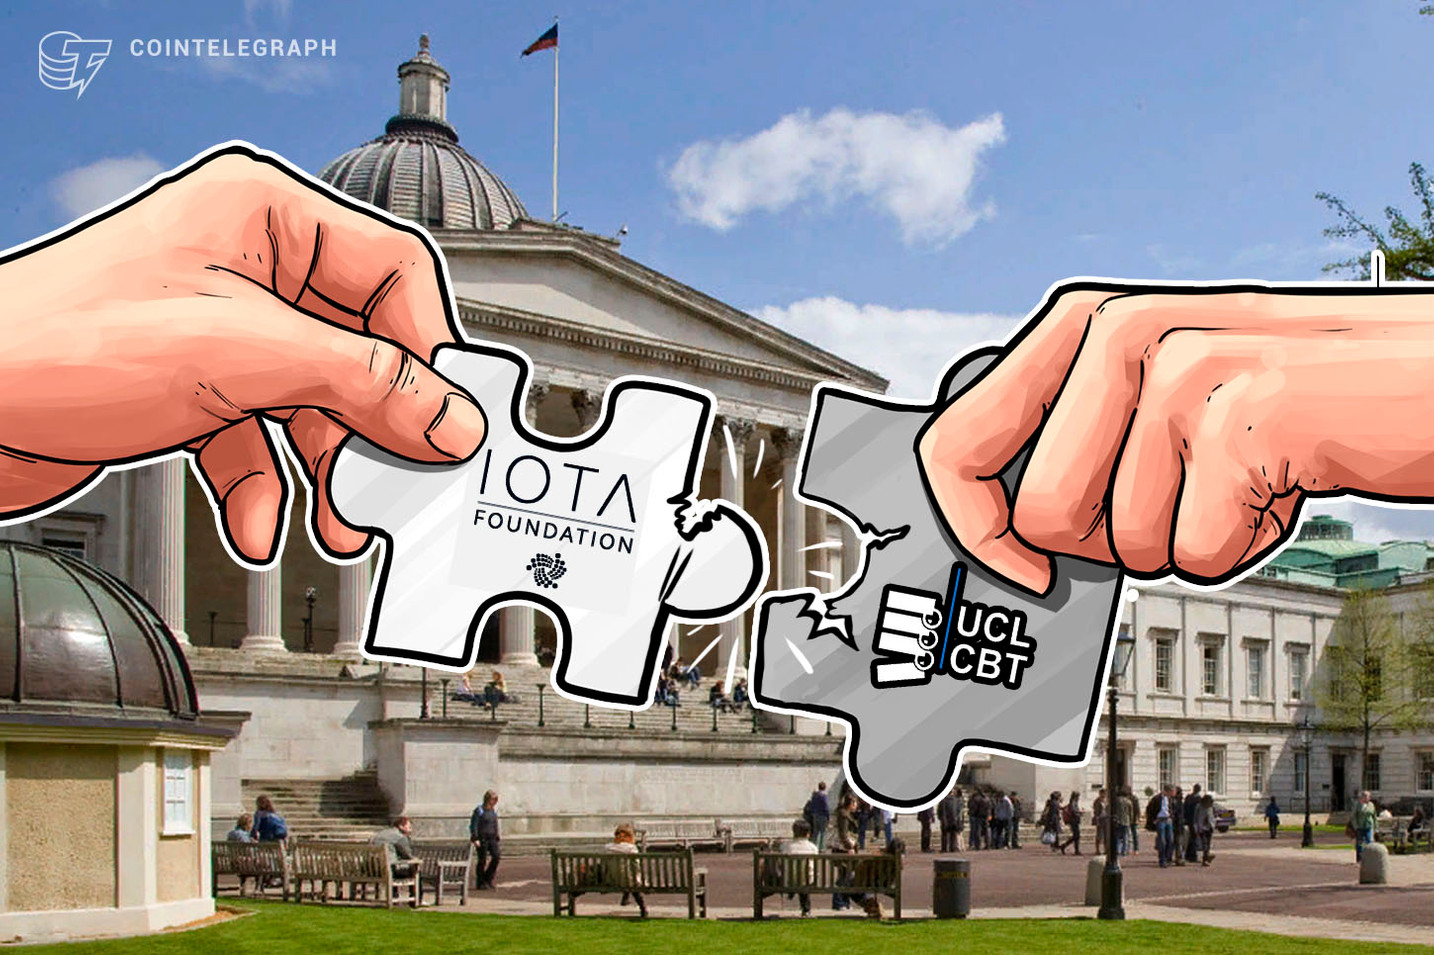 University College London Cuts Ties With IOTA, Cites 'Support For Open Security Research'